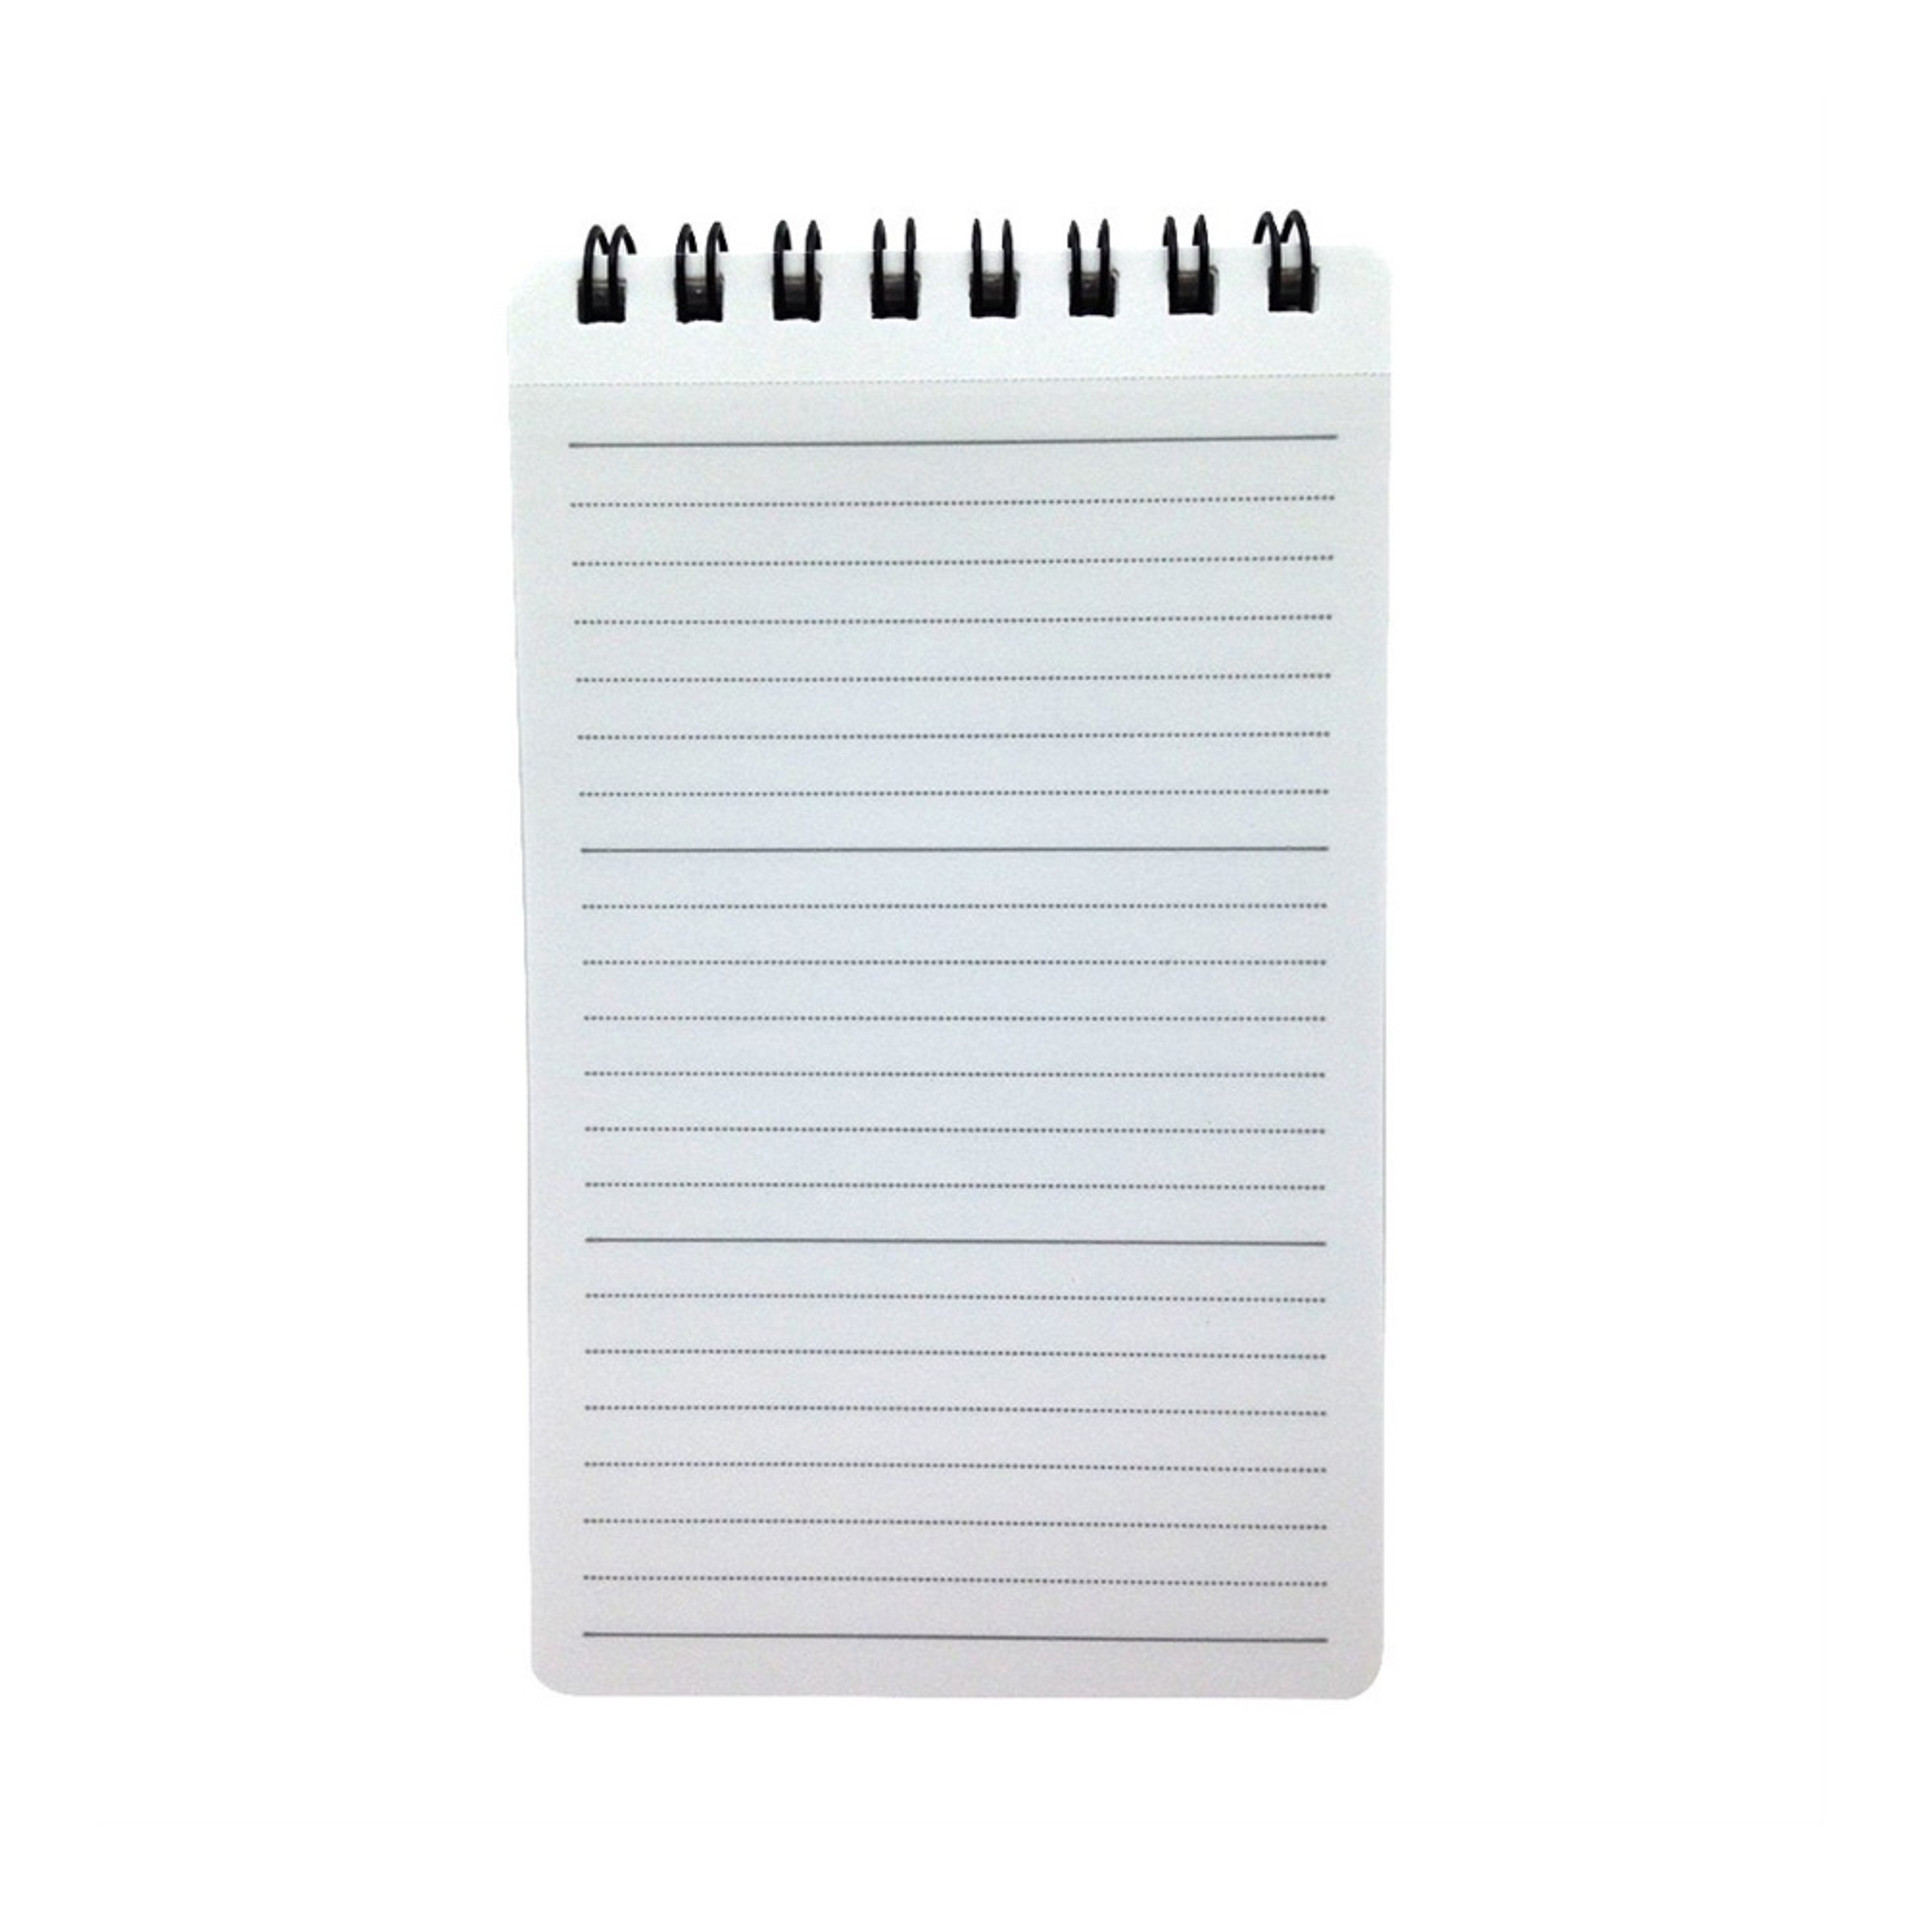 Maruman Mnemosyne Ruled Top Spiral Notebook 3x5 Paper